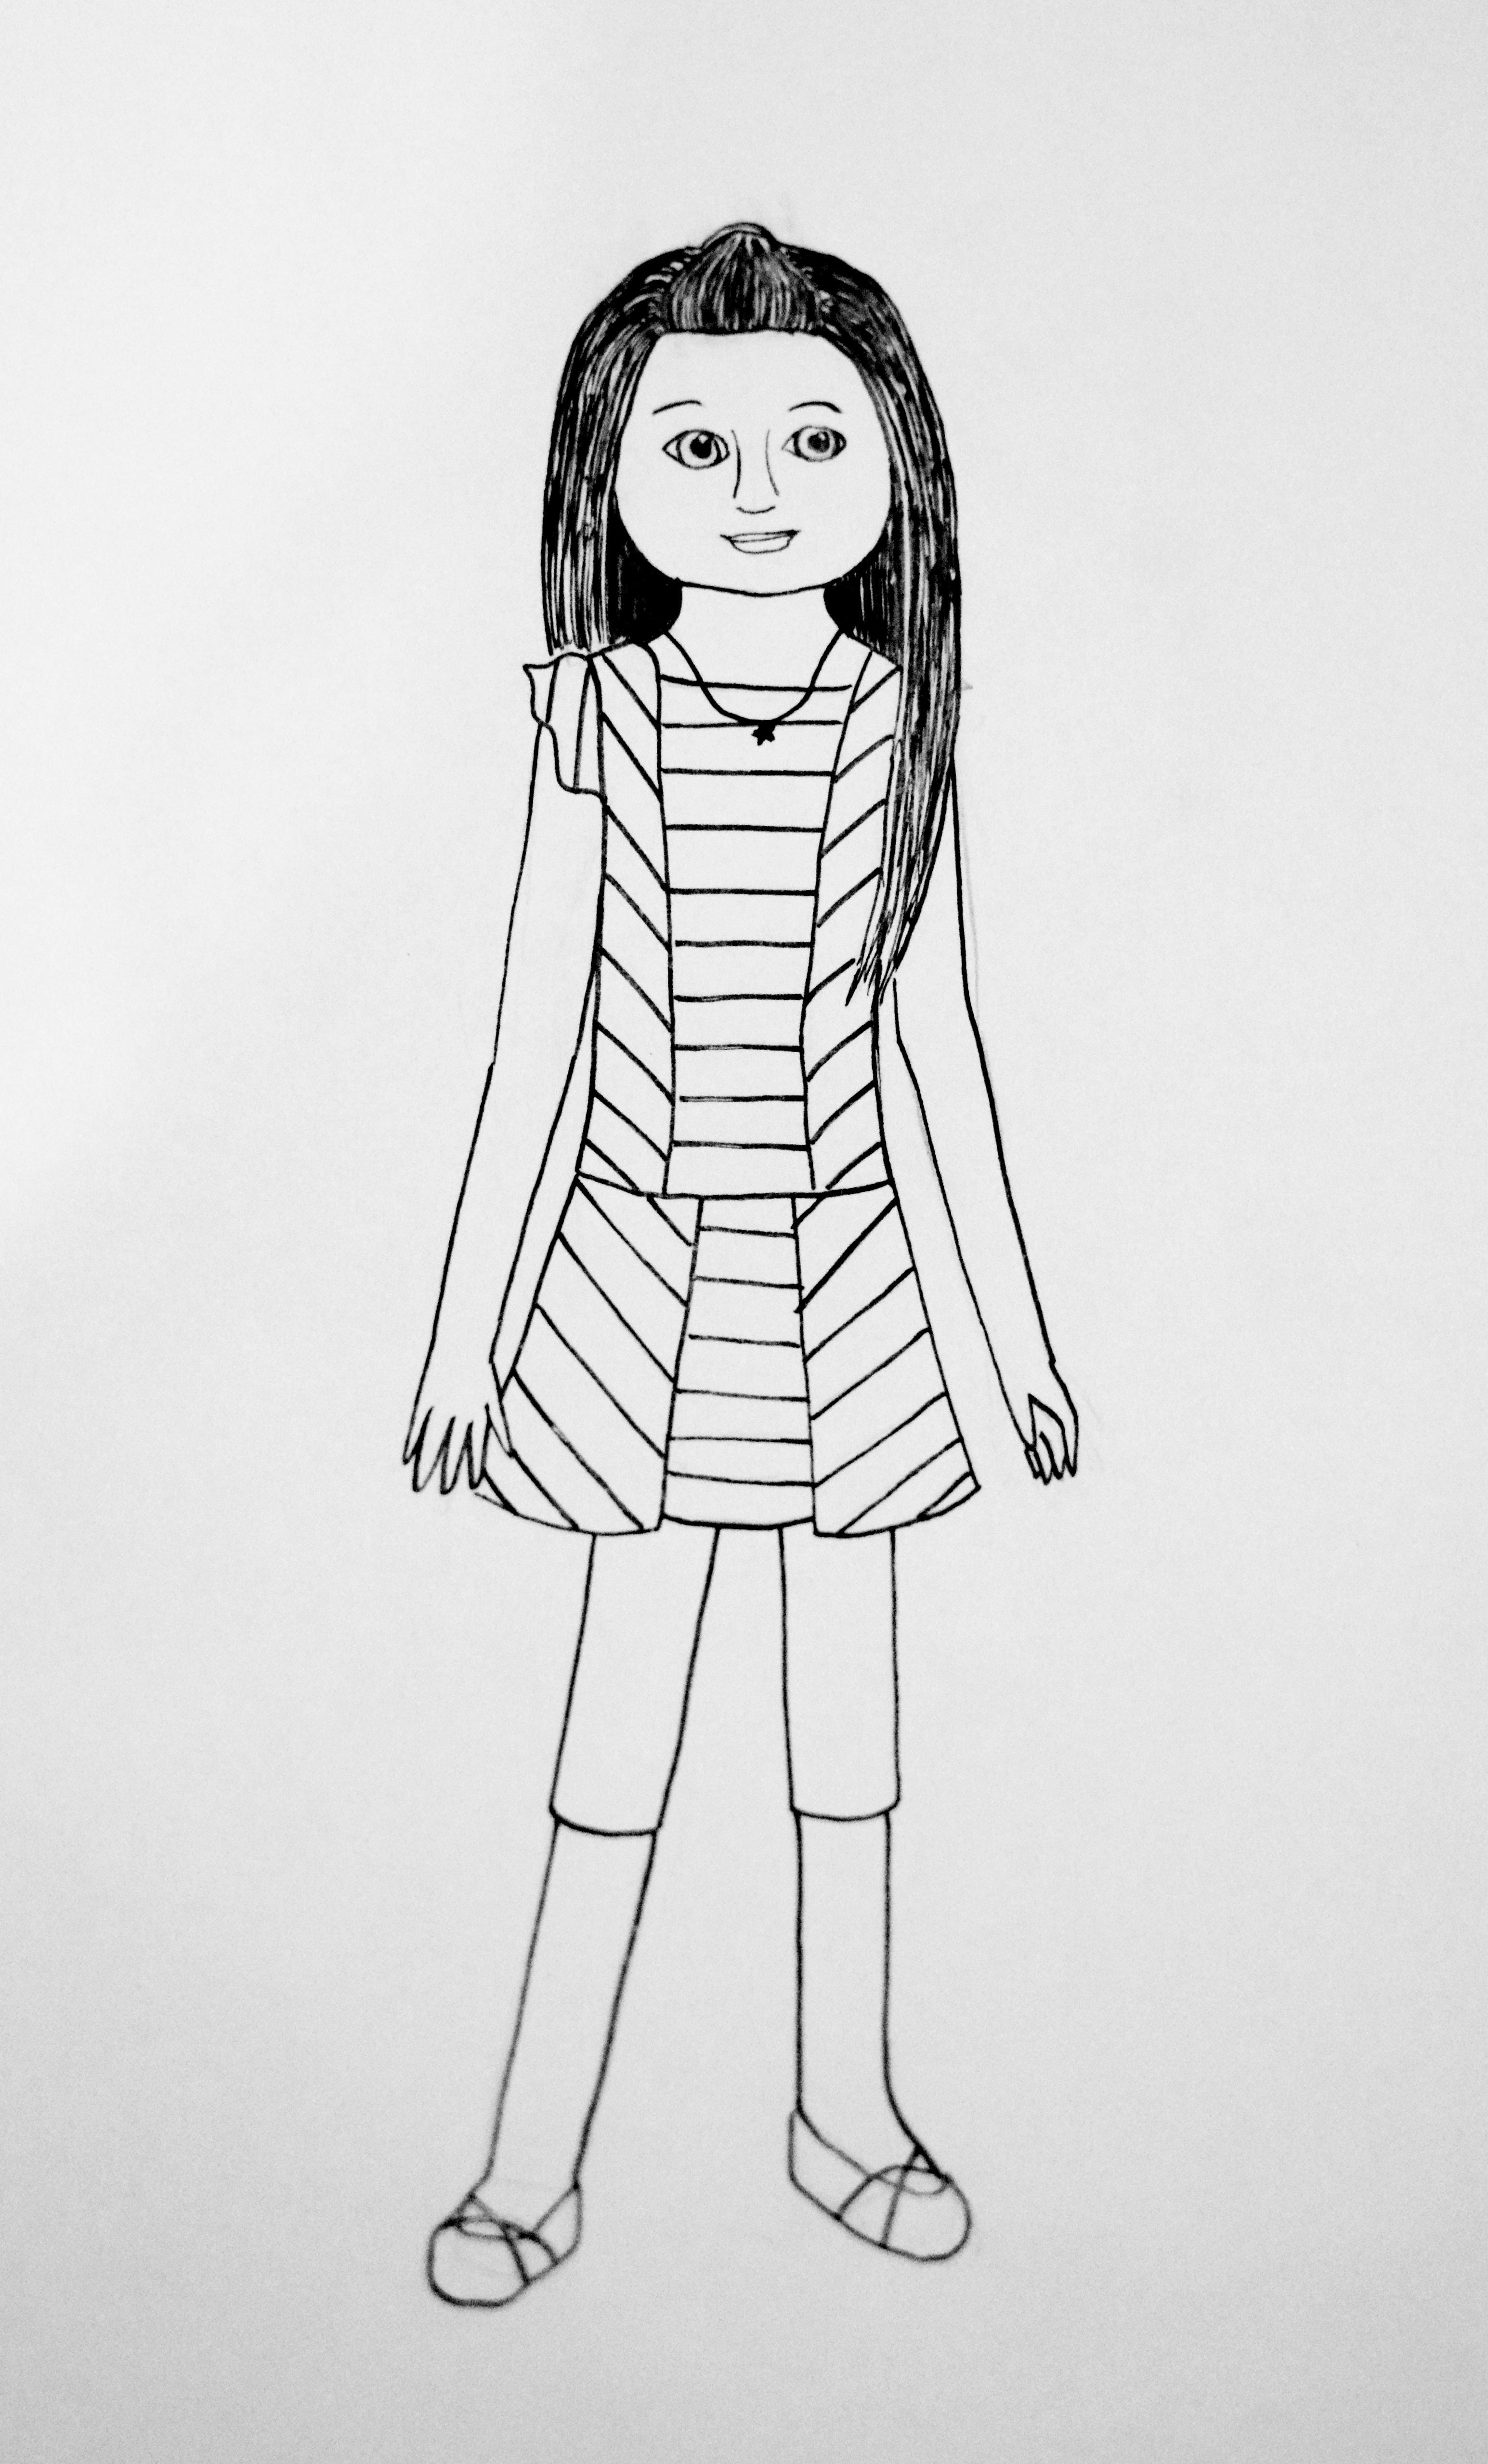 Girl With Doll Coloring Page  Coloring Home